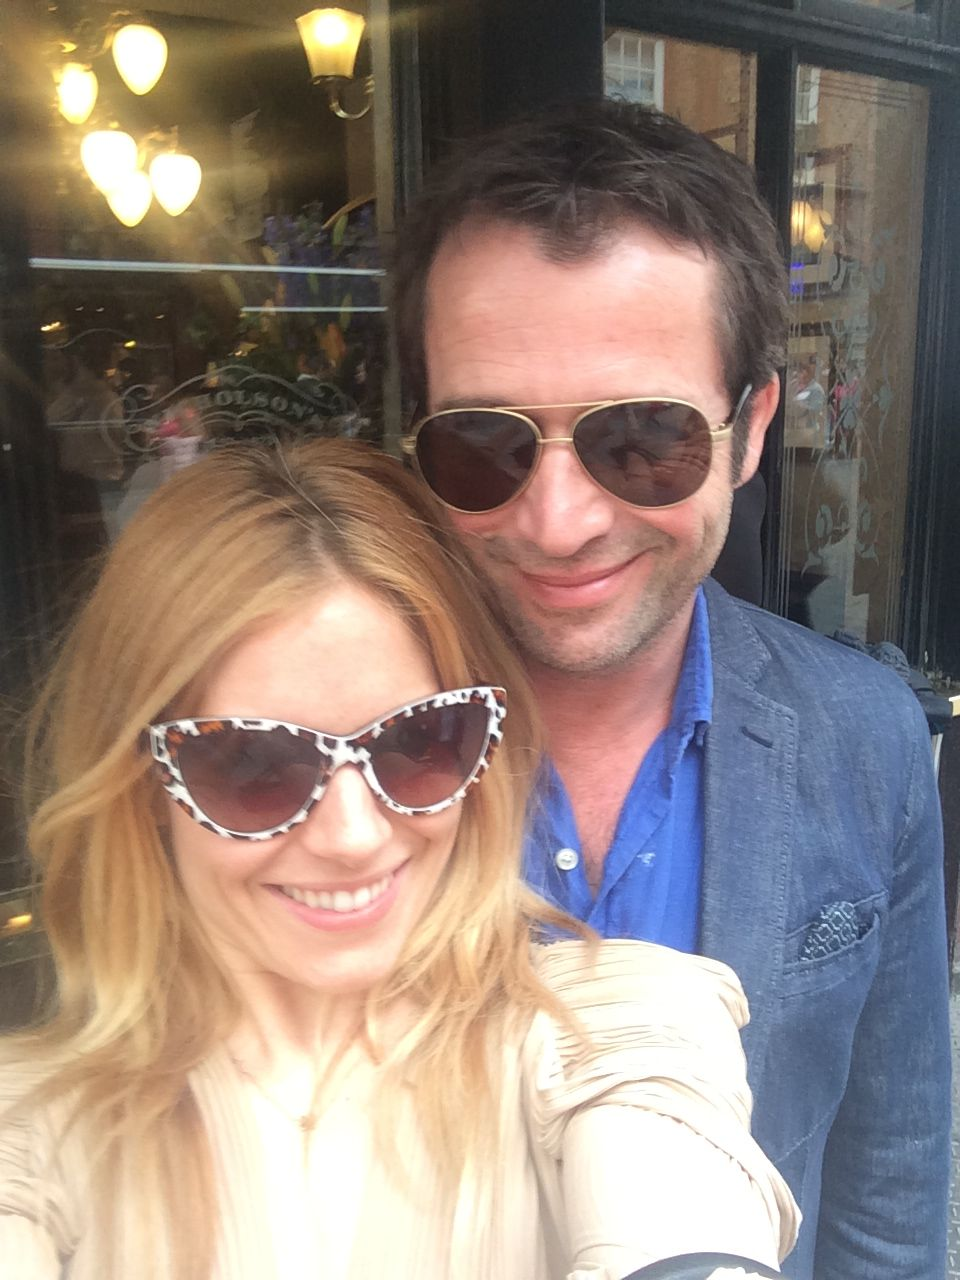 Sienne Miller and man take a selfie in sunglasses